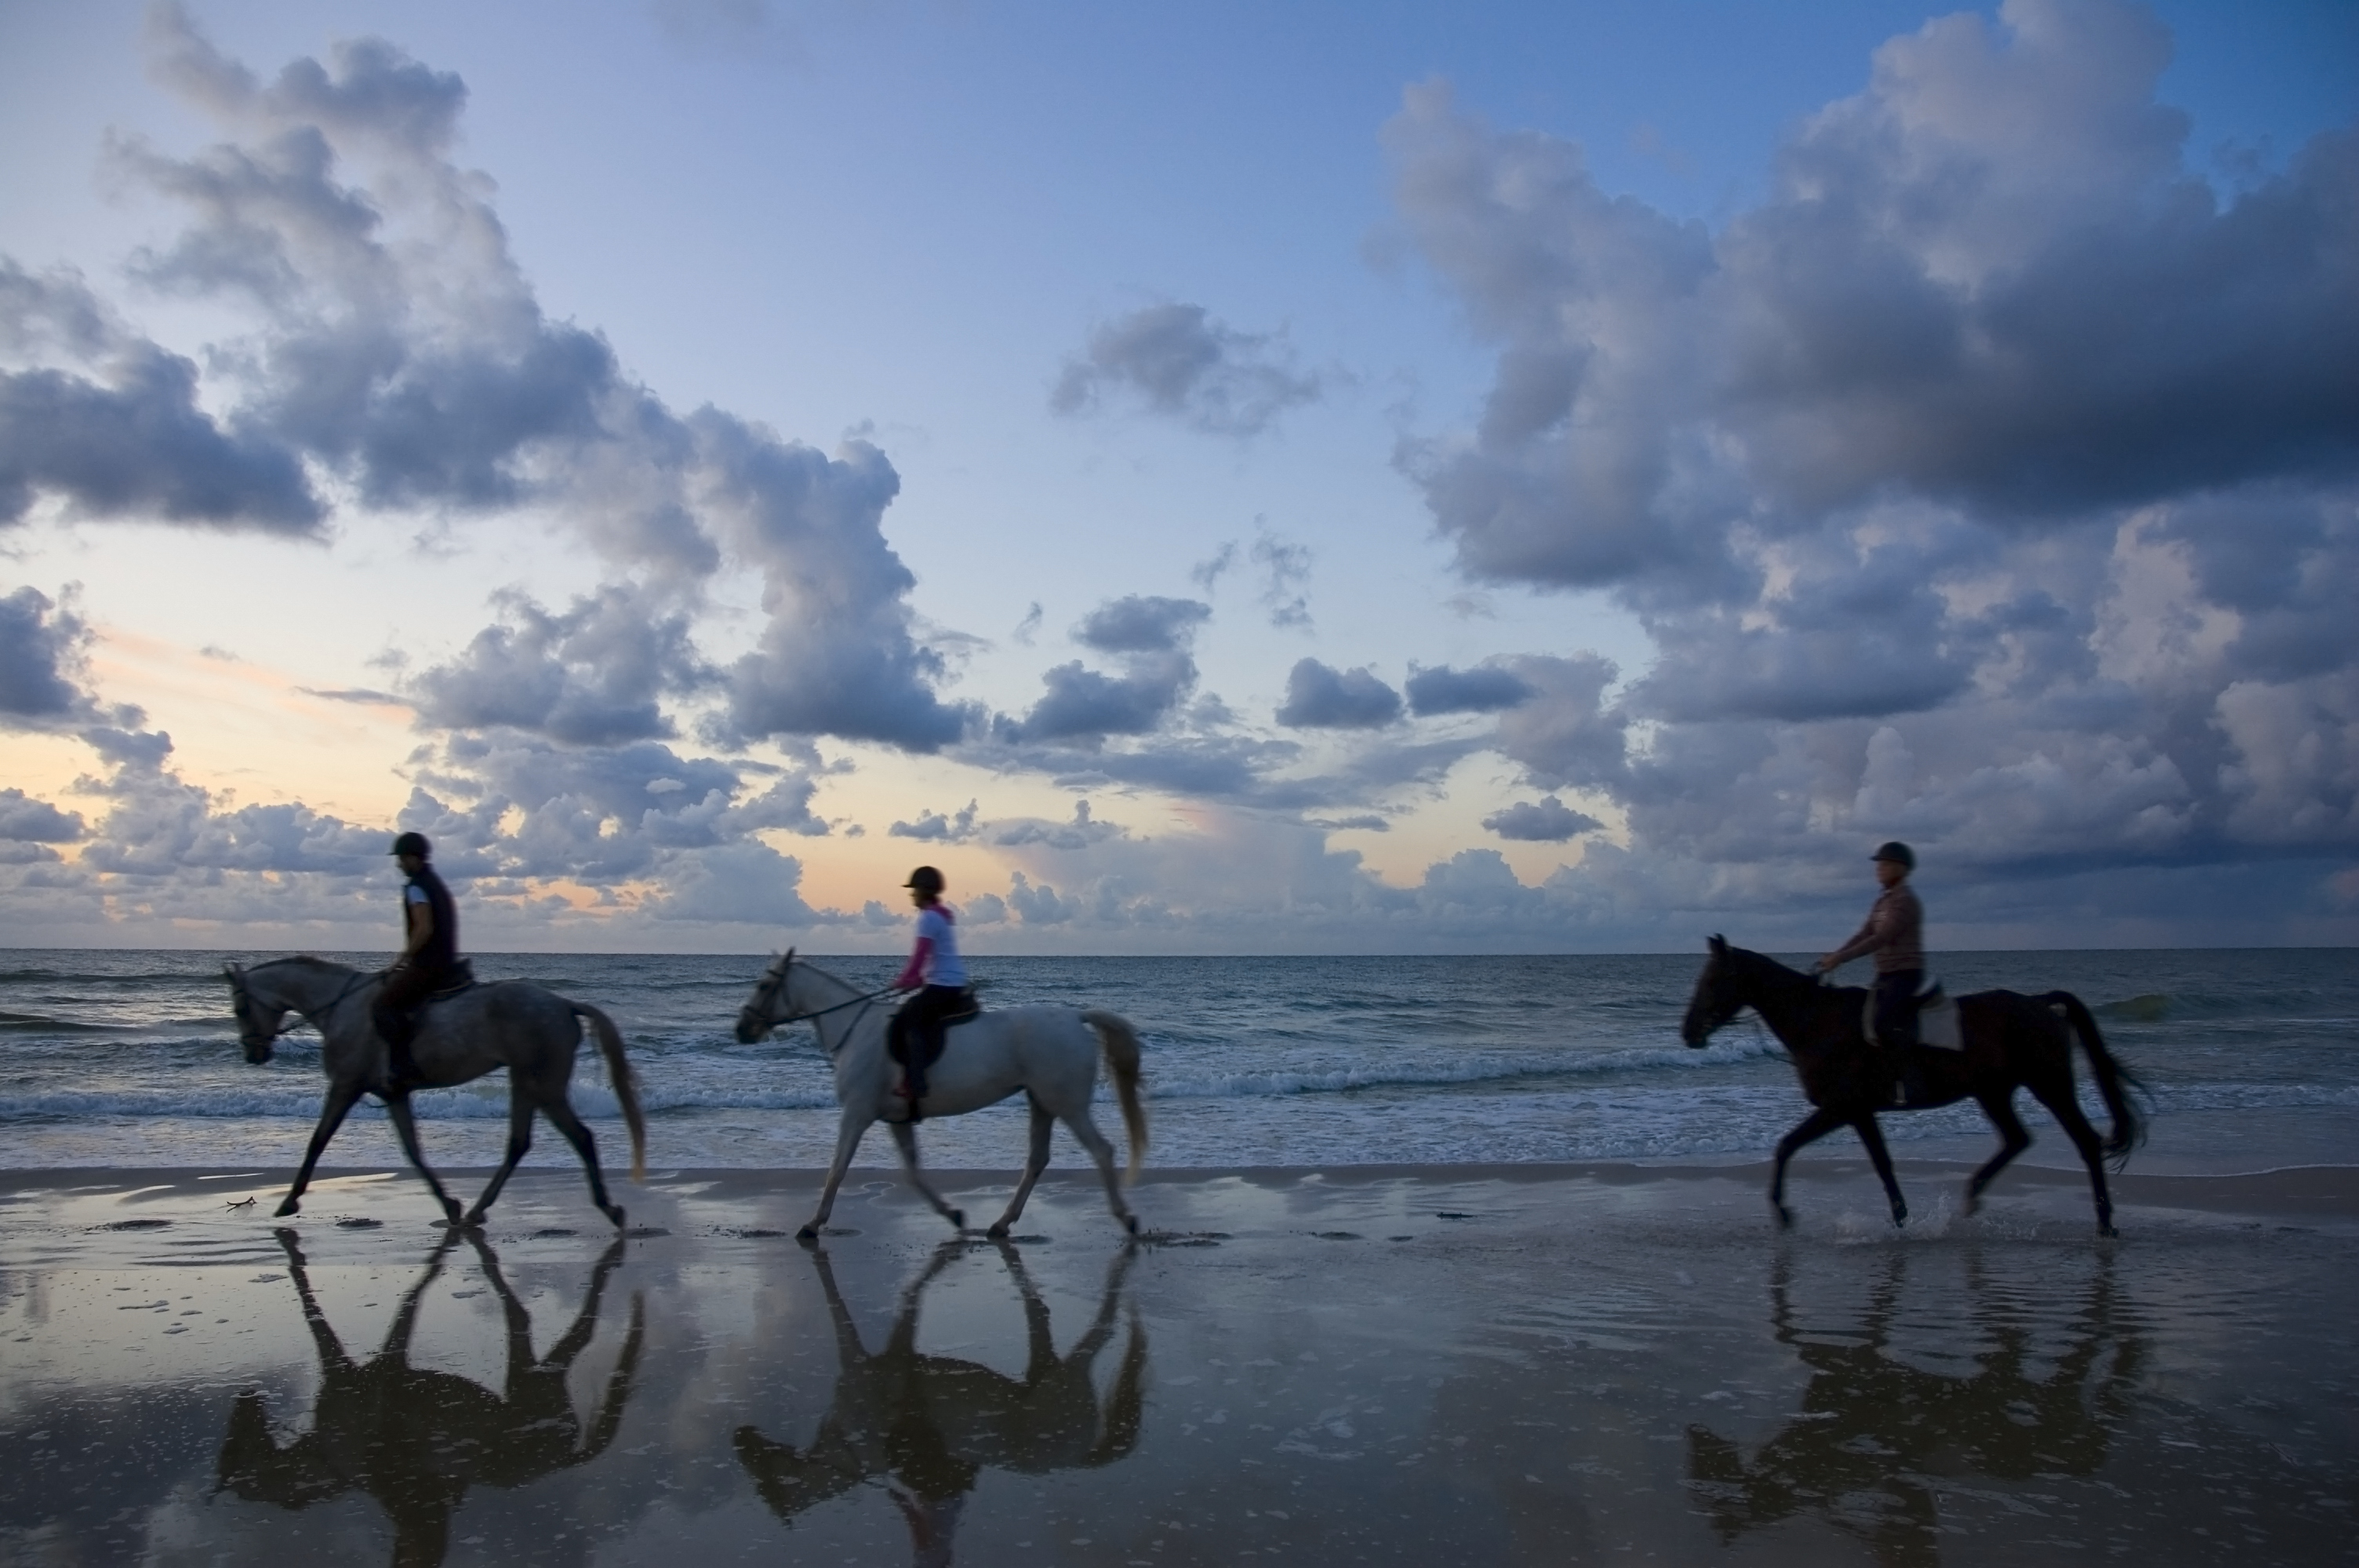 Seabrook Island, Horseback riding